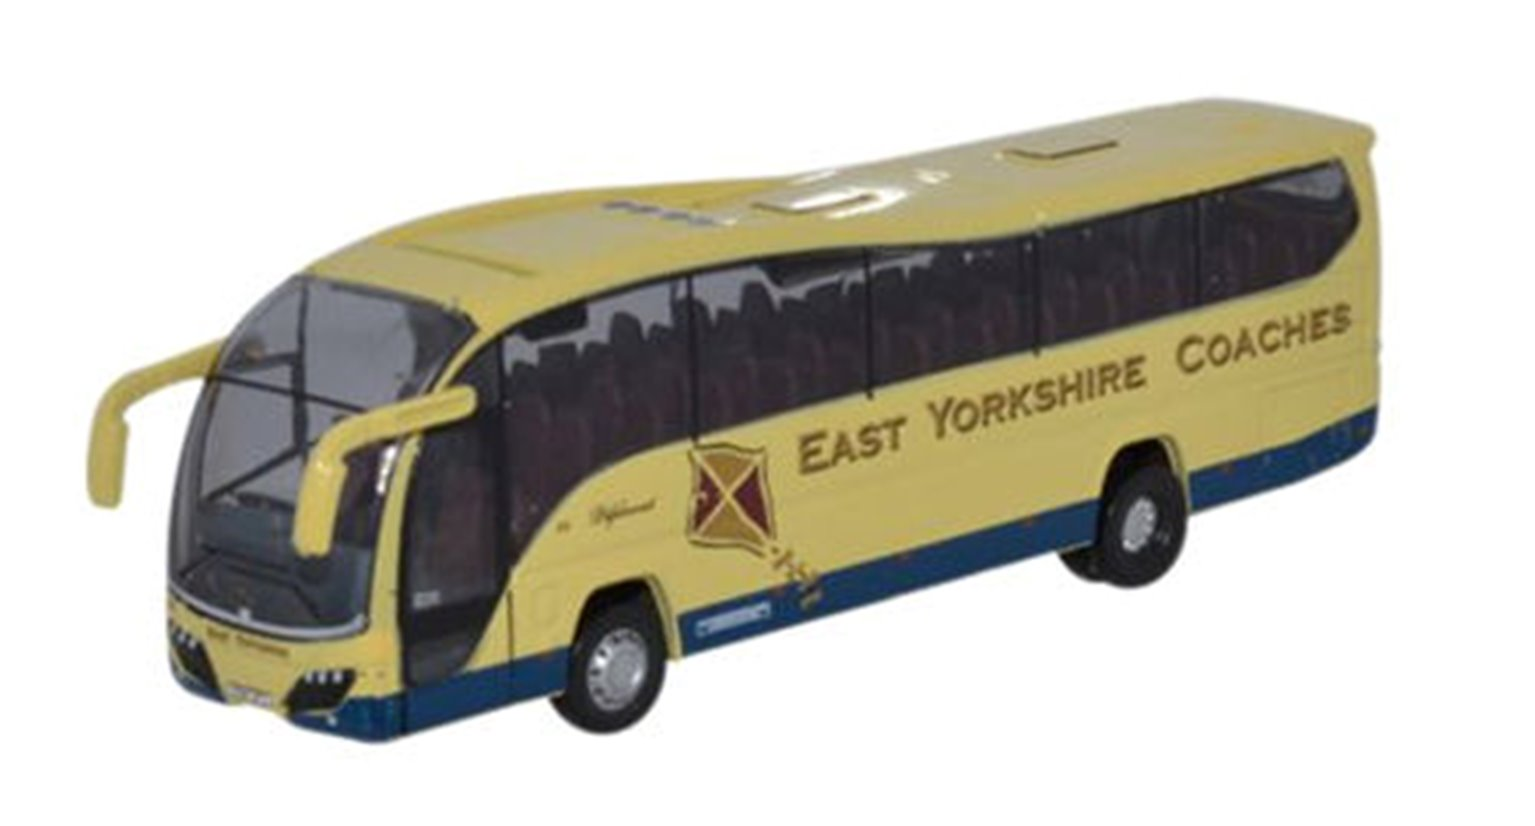 Oxford Diecast NPE009 Plaxton Elite East Yorkshire Coaches